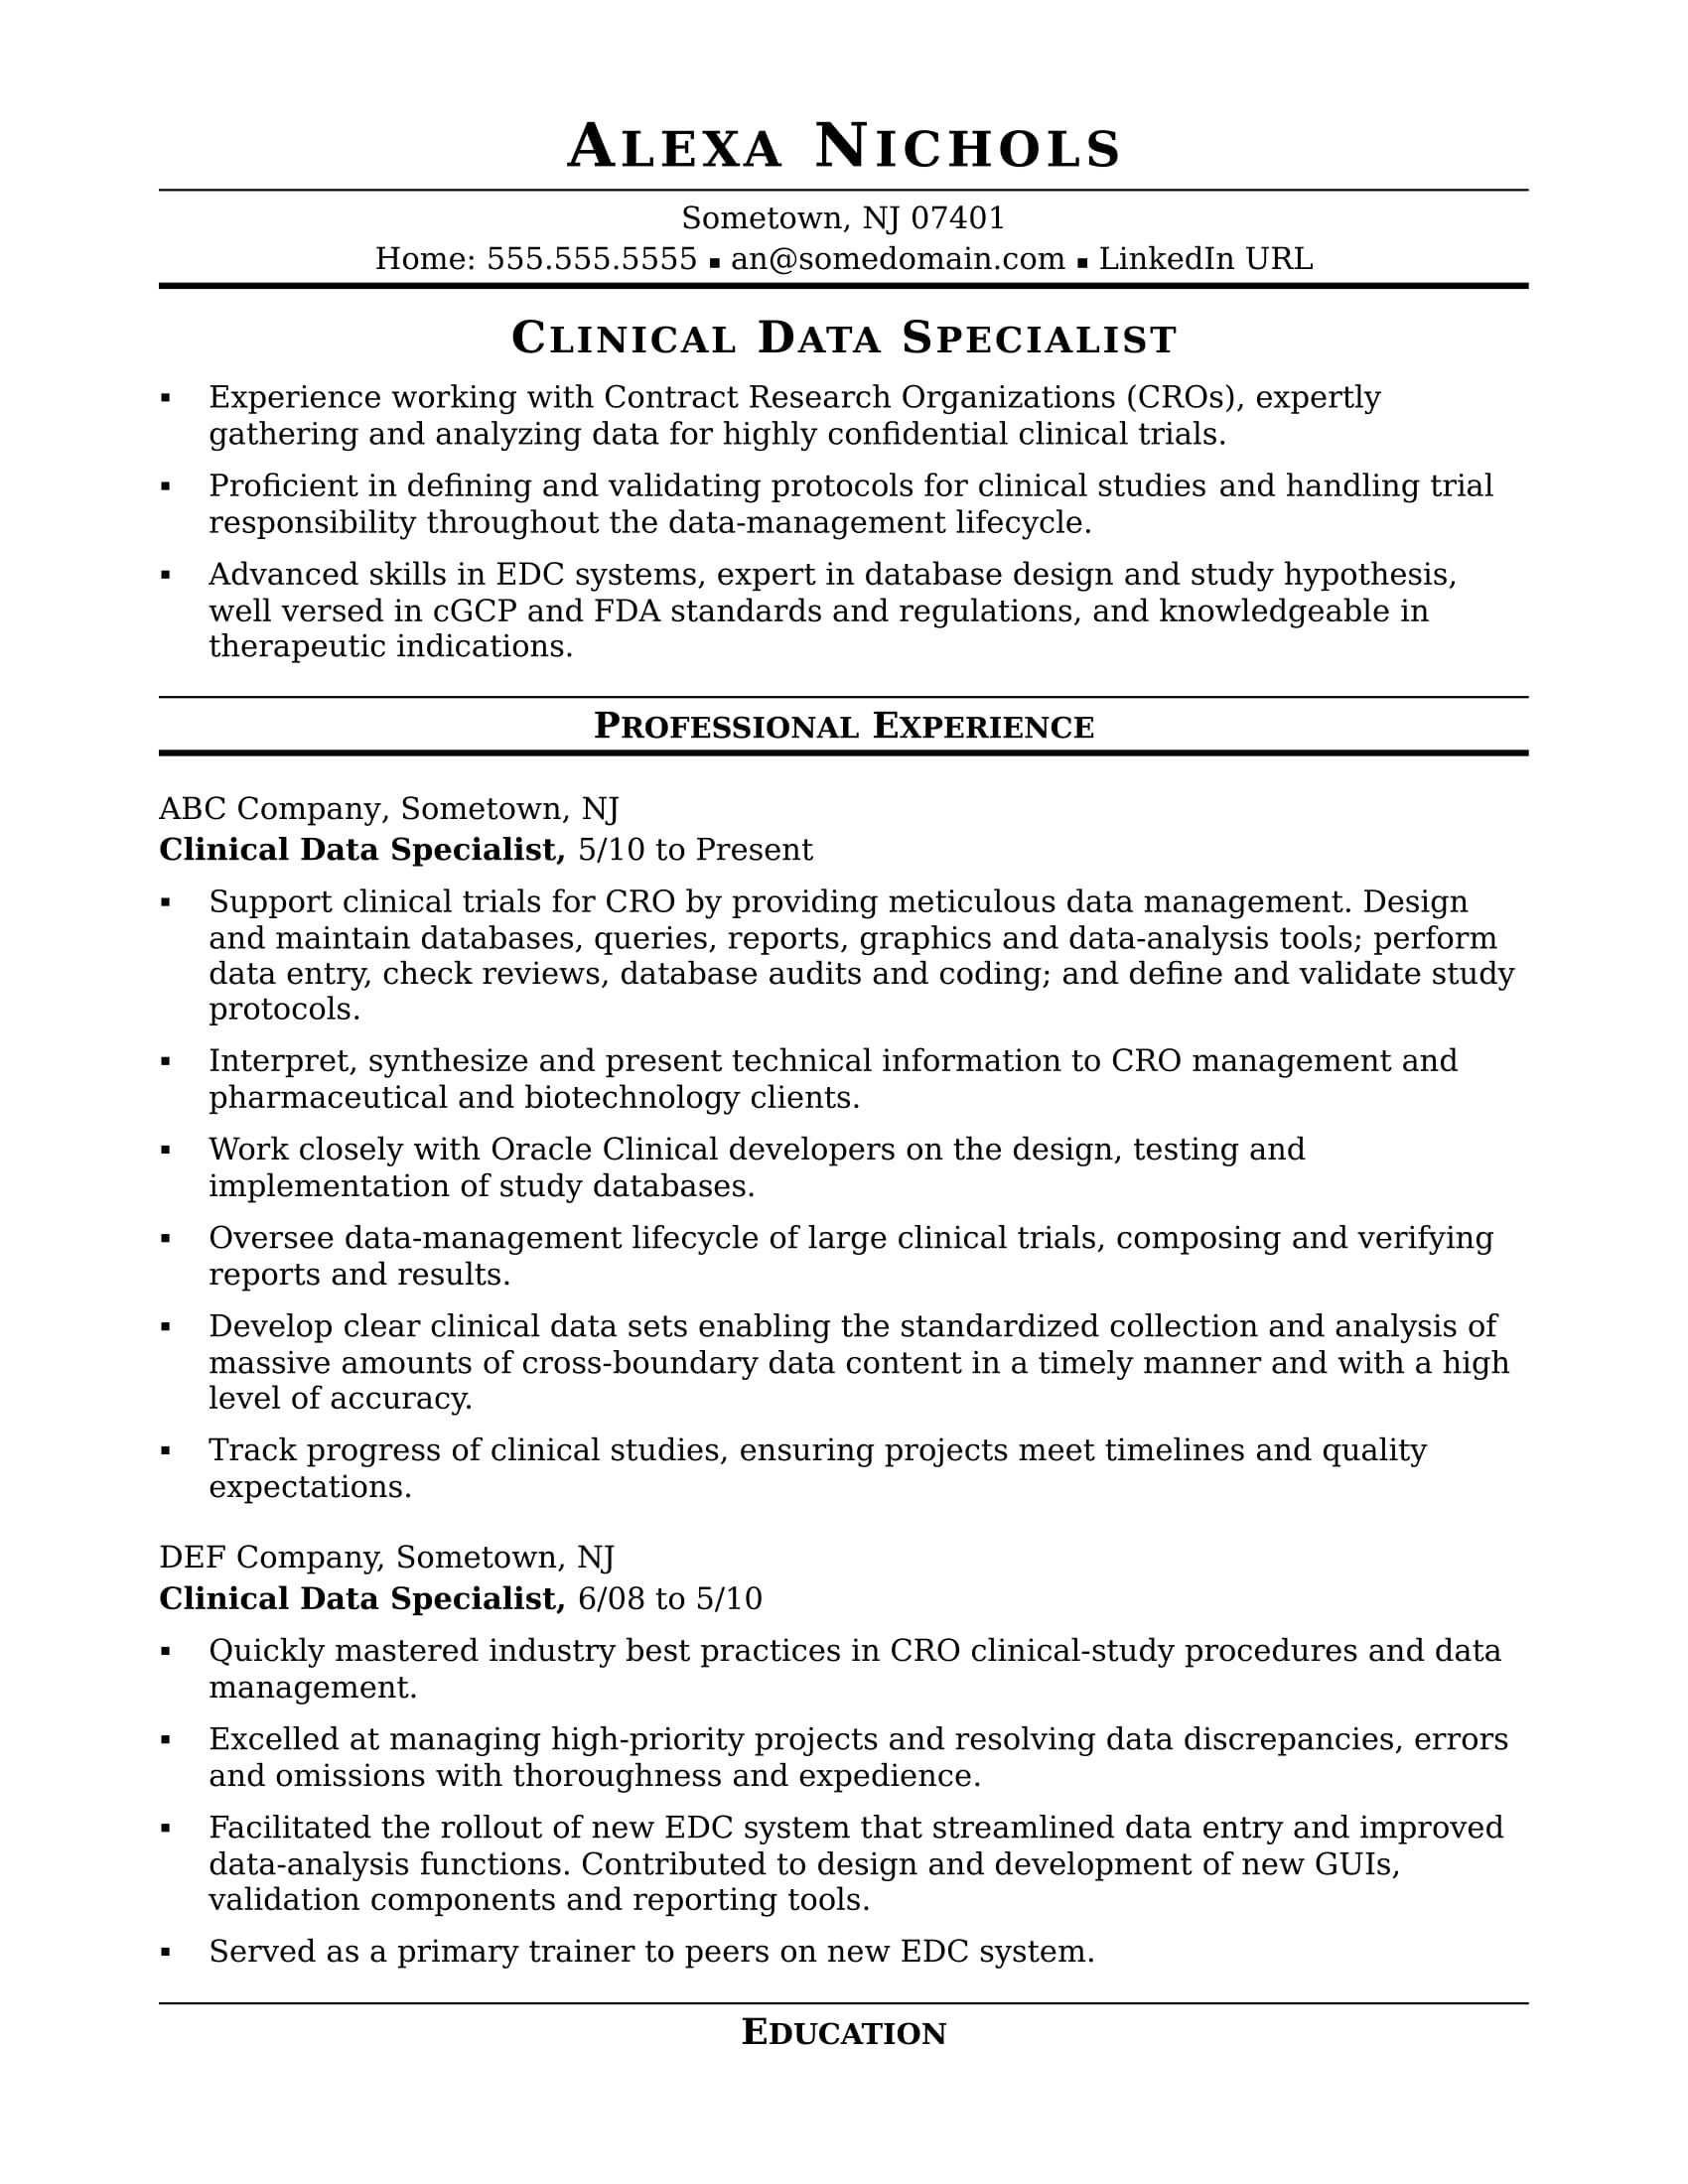 Clinical Data Specialist Resume Sample | Monster.com